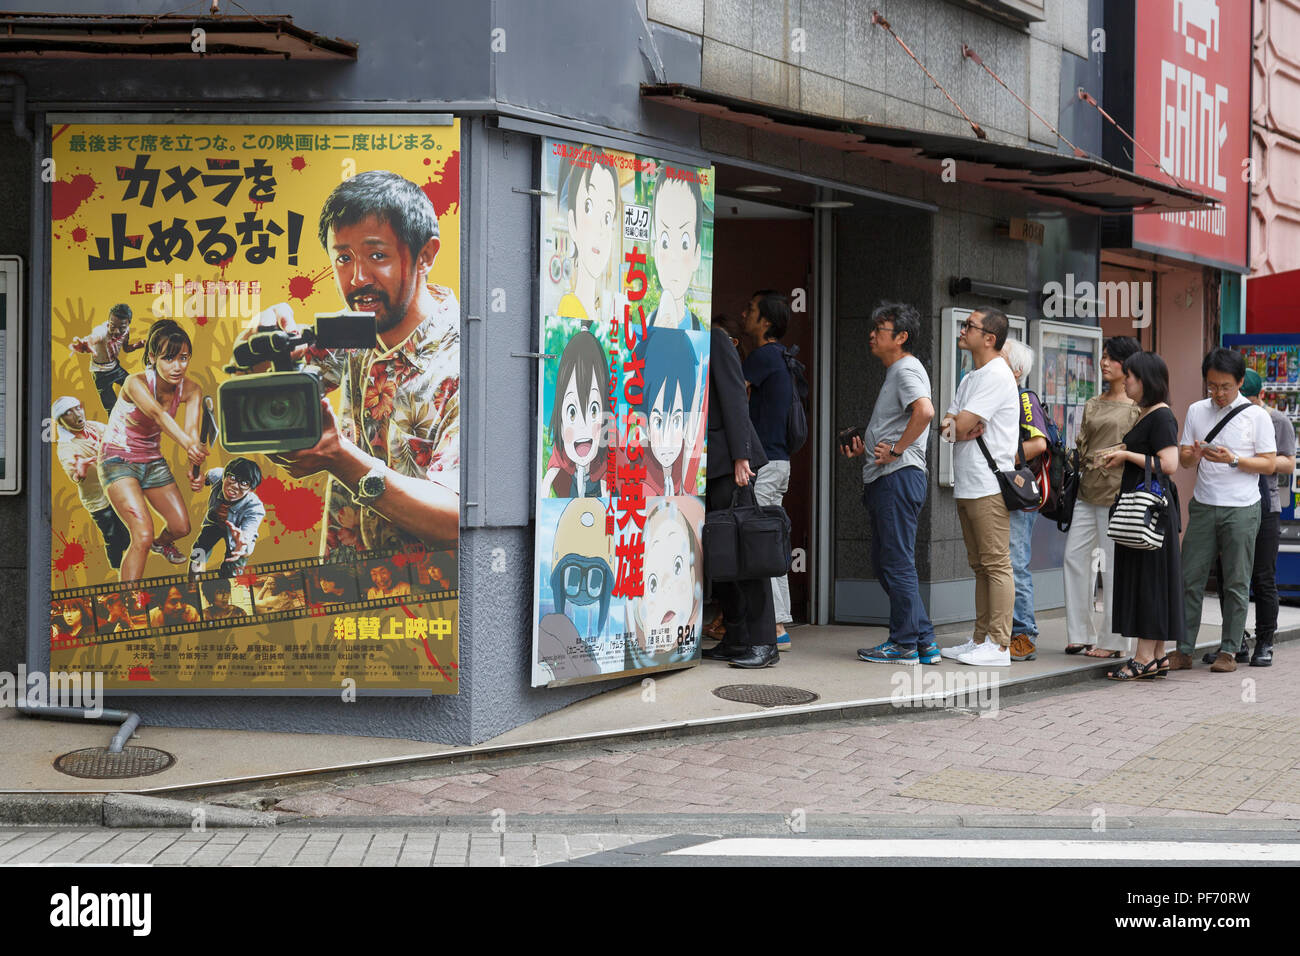 People Line Up Outside Movie Theater Cinema Rosa To See One Cut Of The Dead Japanese